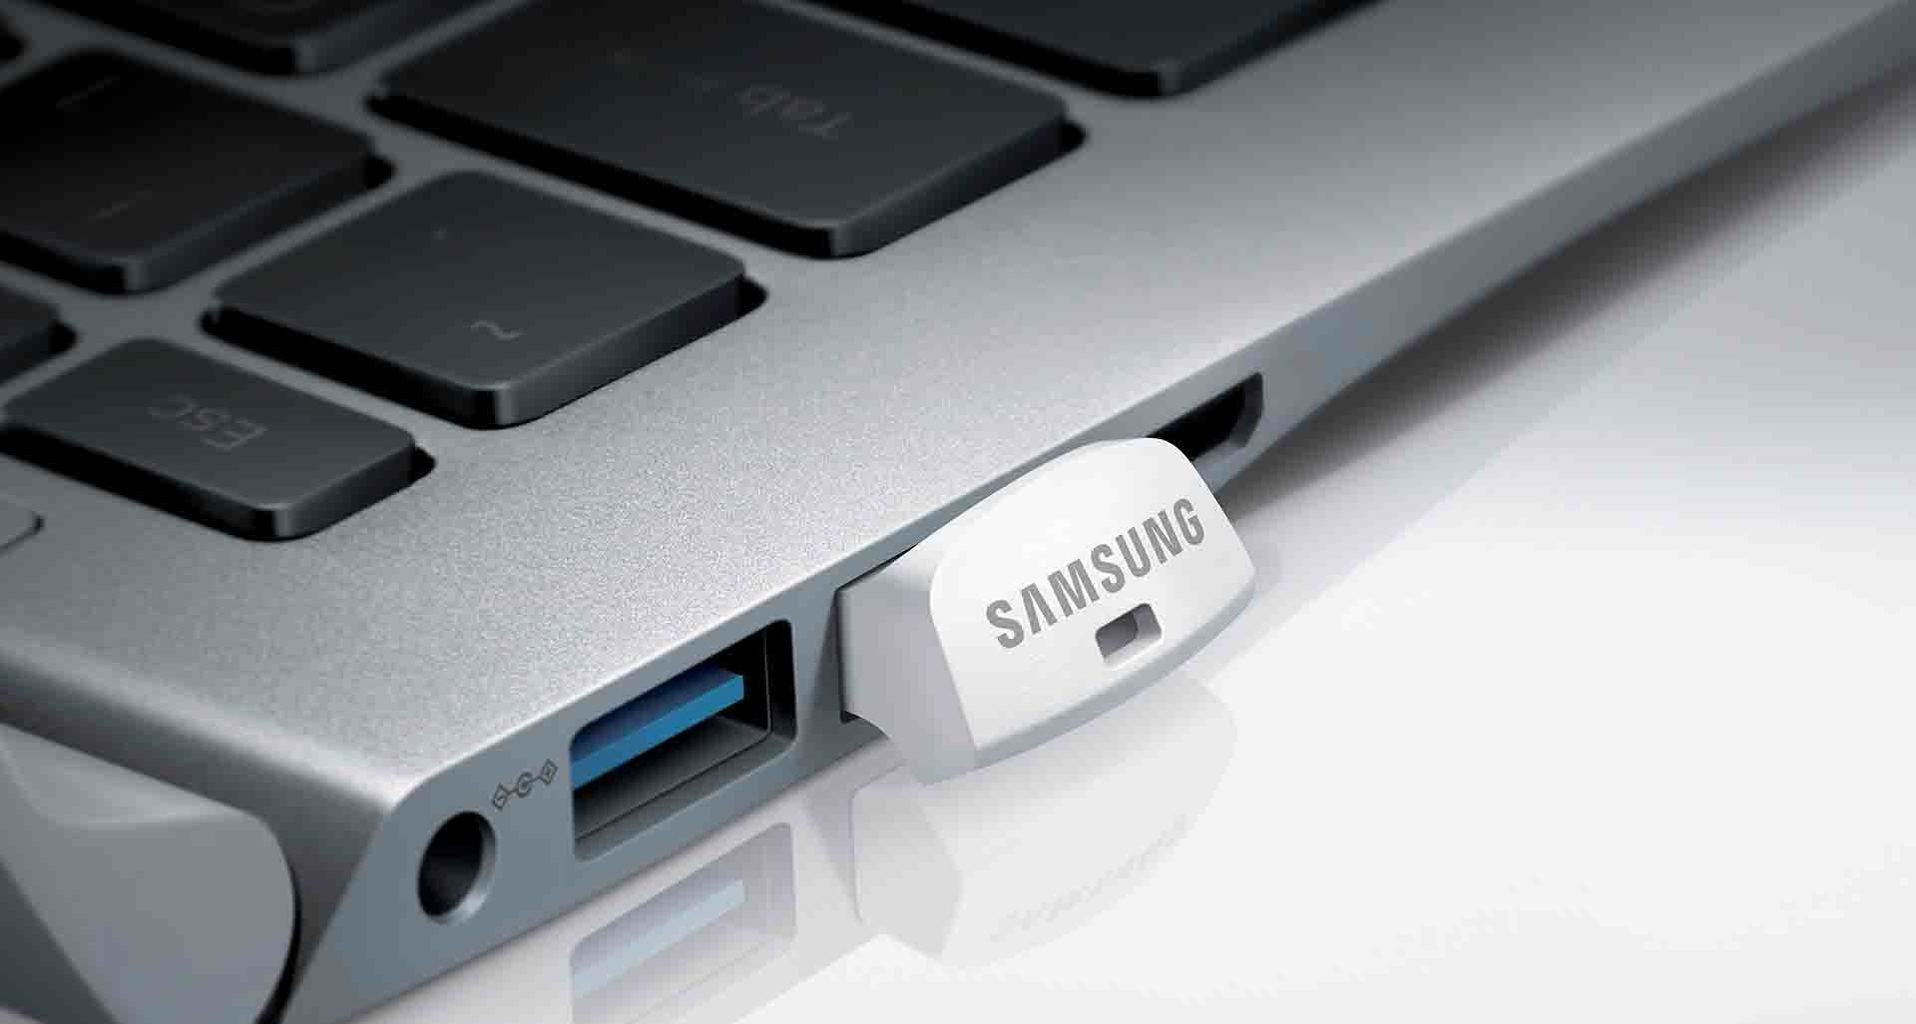 Samsung Fit Into the laptop